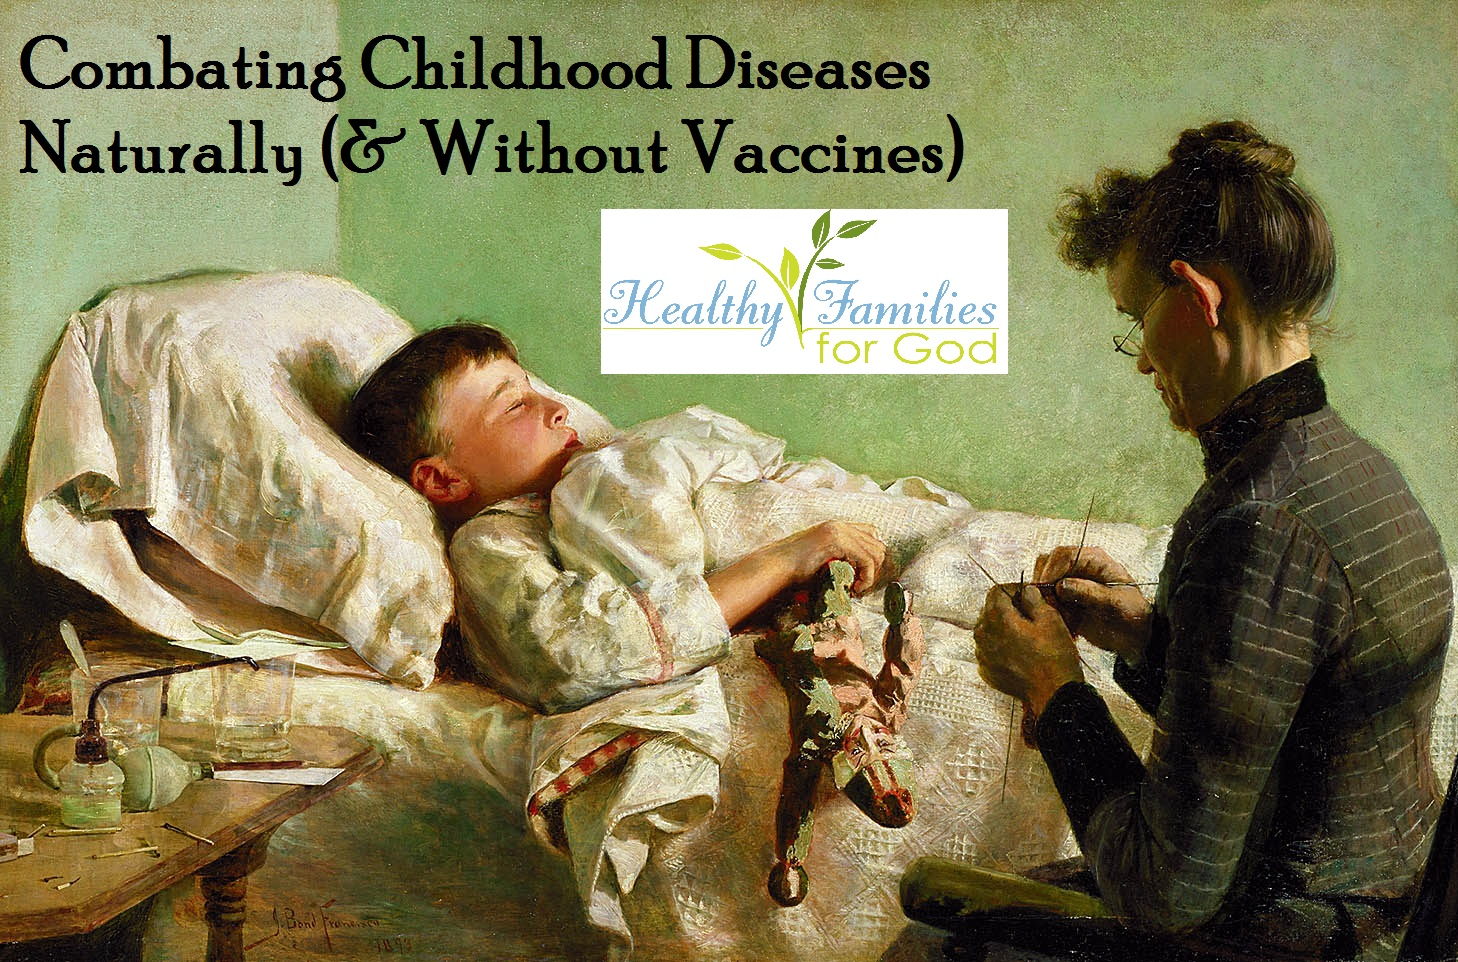 Combatting childhood diseases naturally (and without toxic vaccines) by HFFG